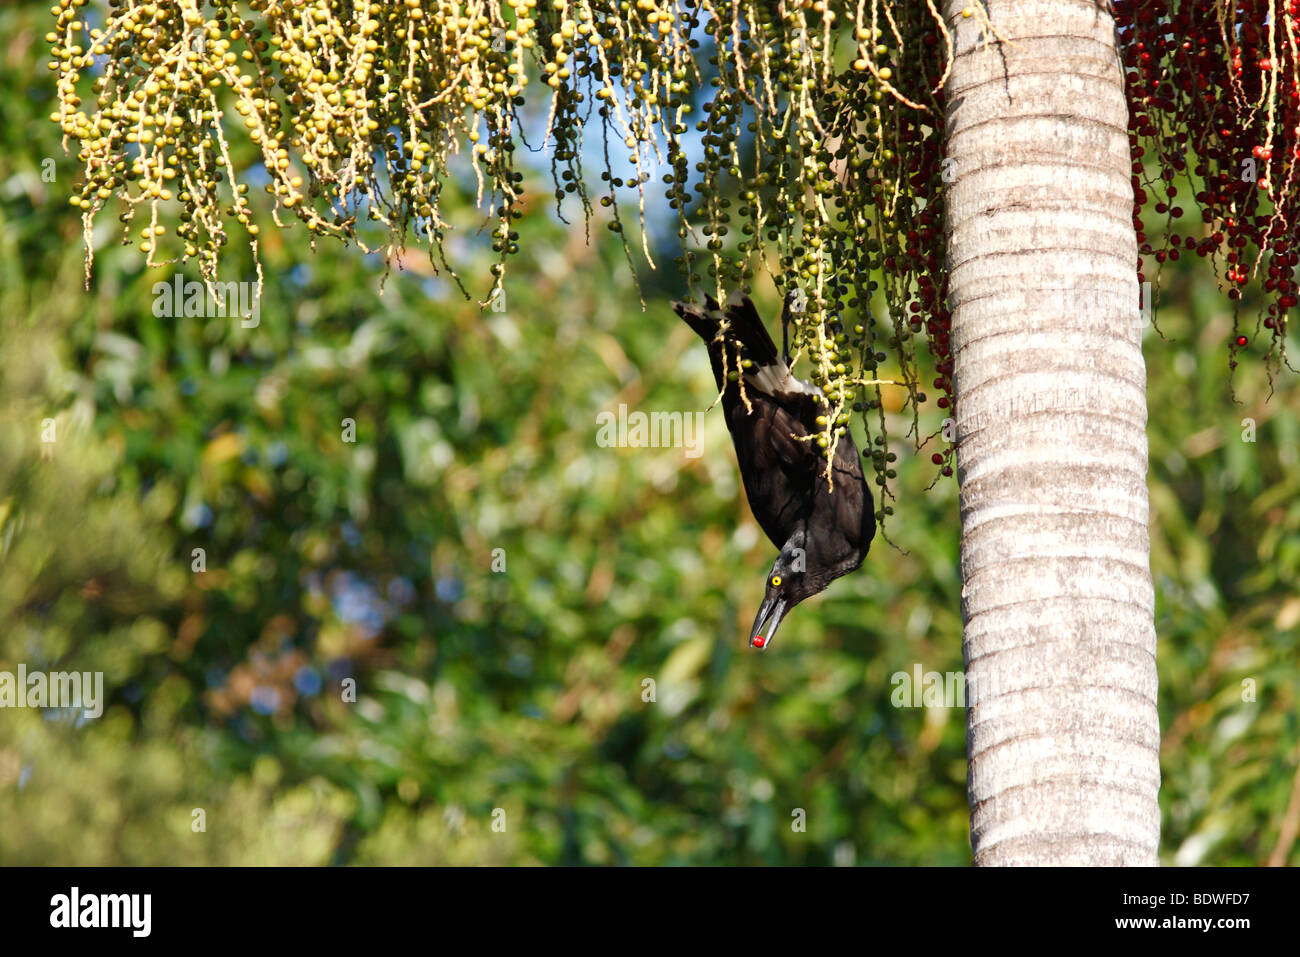 Pied Currawong, Strepera graculina, eating the fruit of the Alexandra Palm. The bird has a berry in its beak - Stock Image